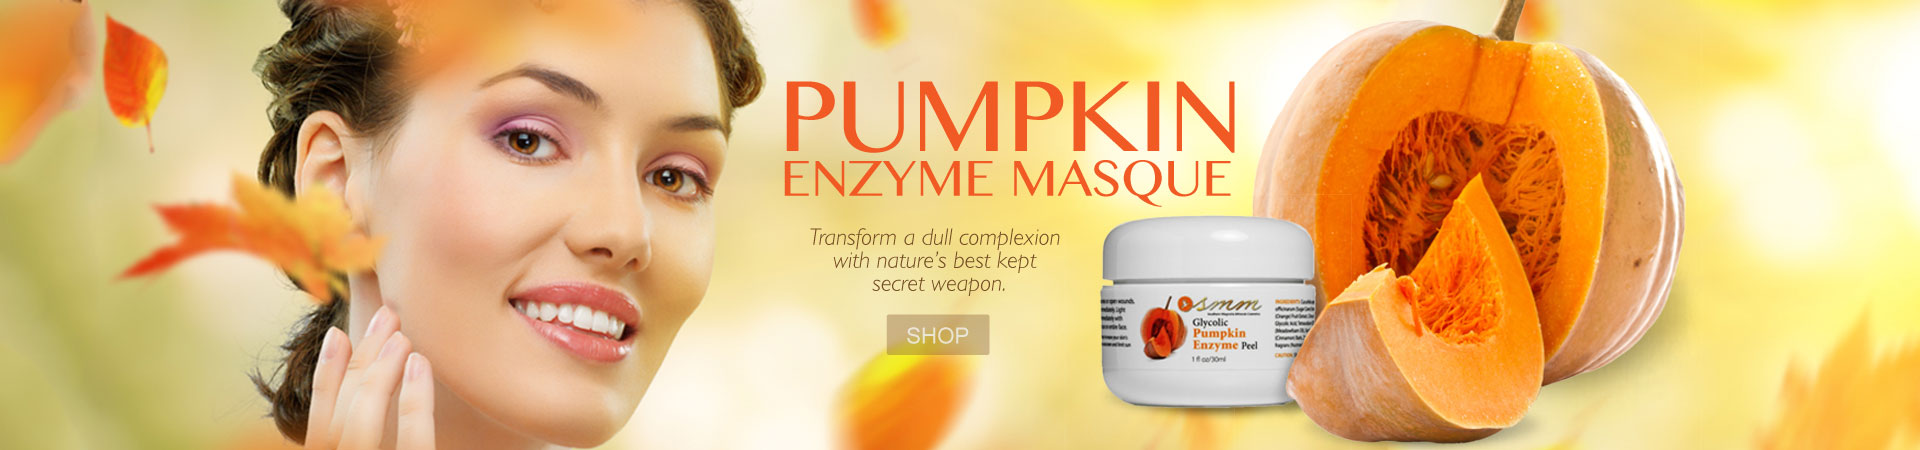 organic facial enzyme mask